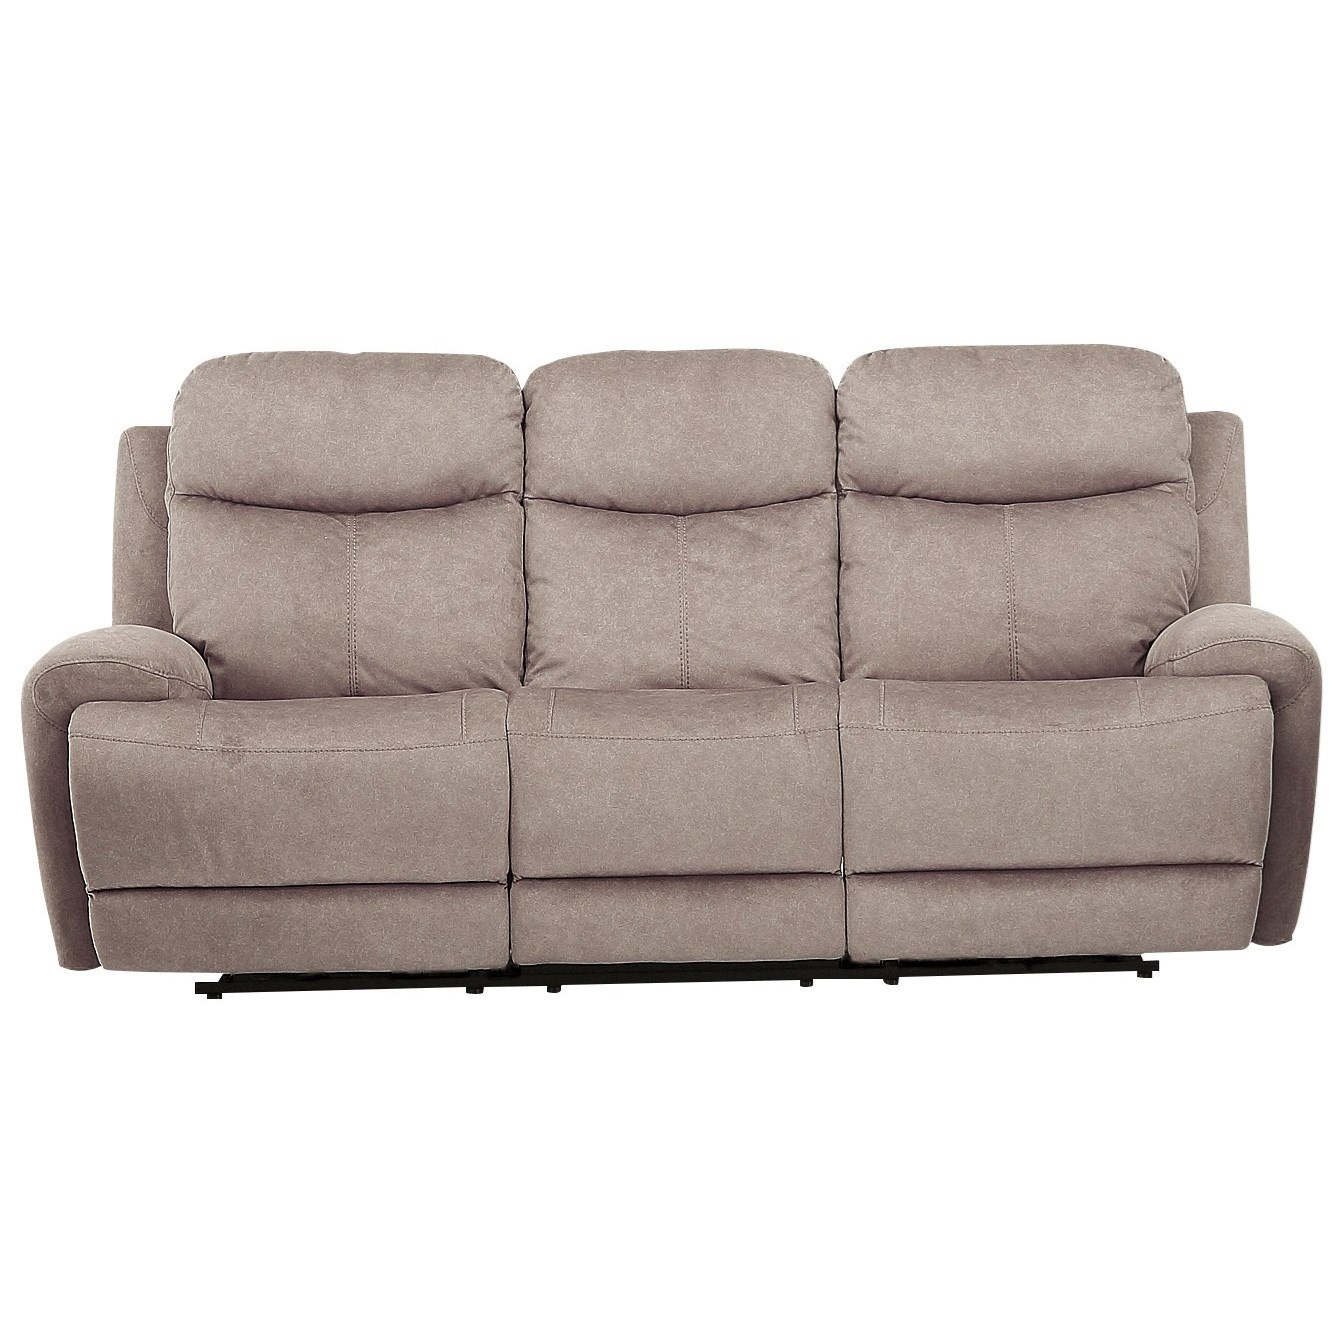 Bowie SOFA DUAL REC PWR W/ USB & PWR HDR by Parker Living at Zak's Home